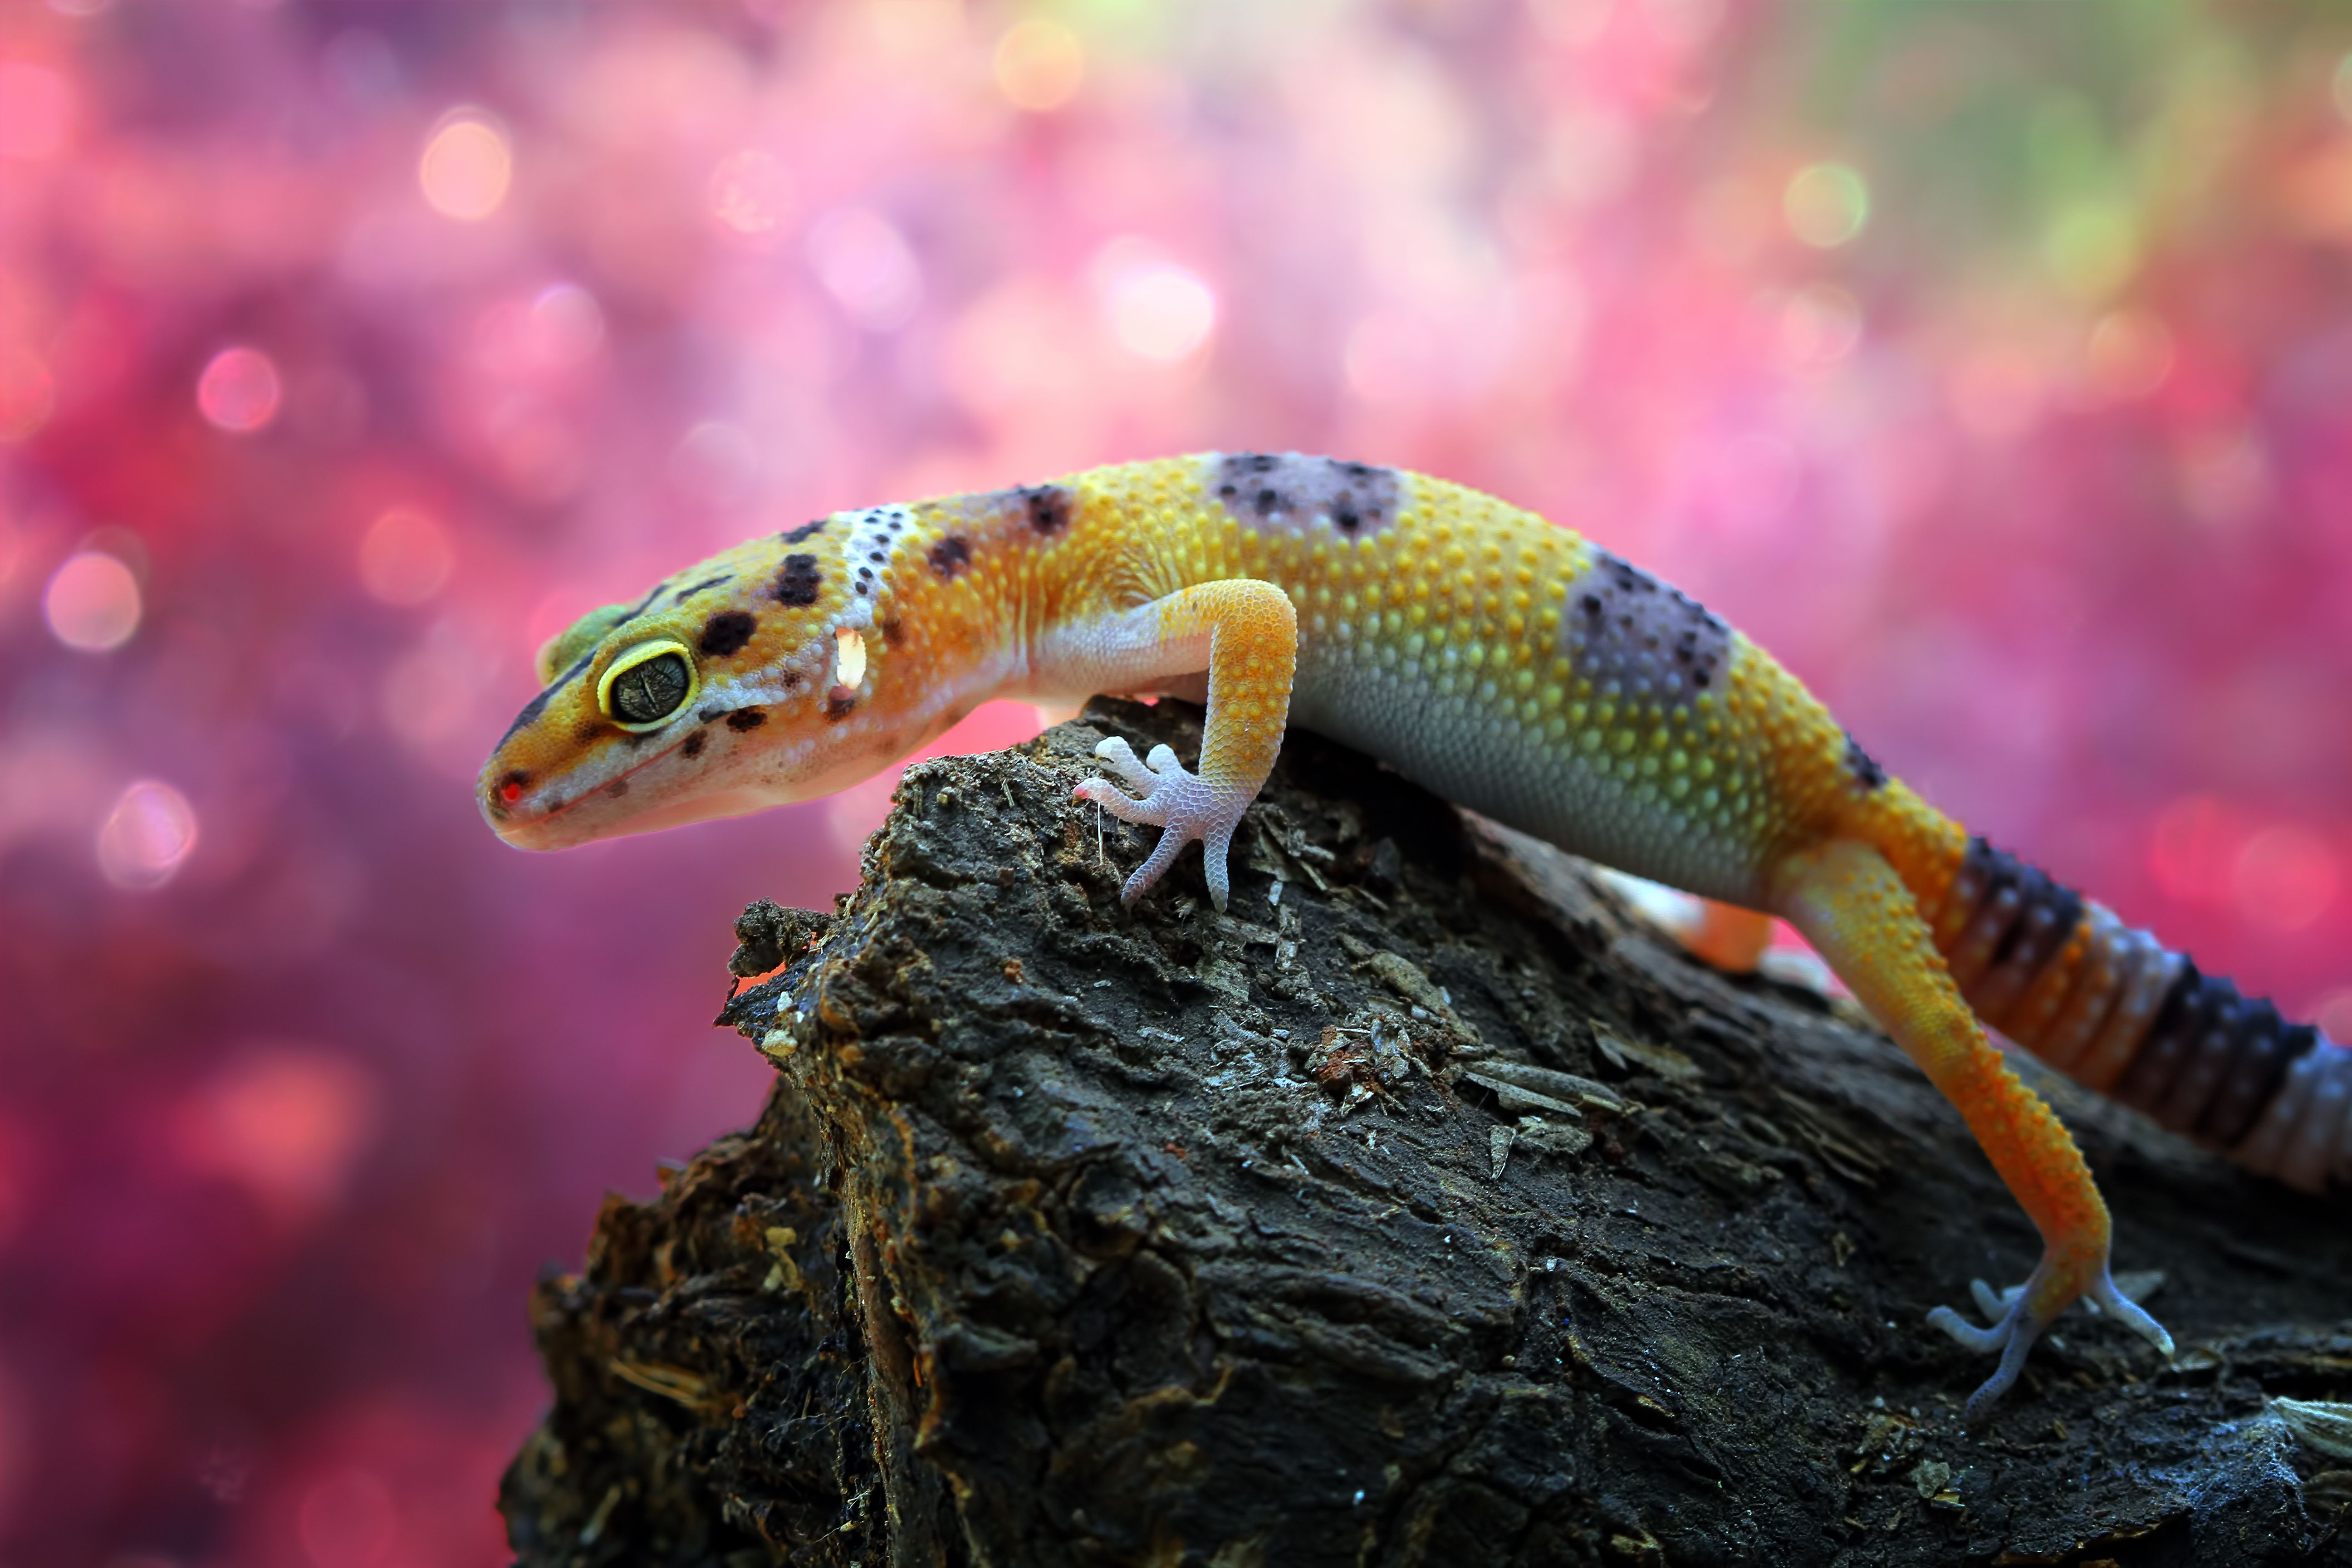 Close-up of a yellow leopard gecko with black spots, resting on a stump